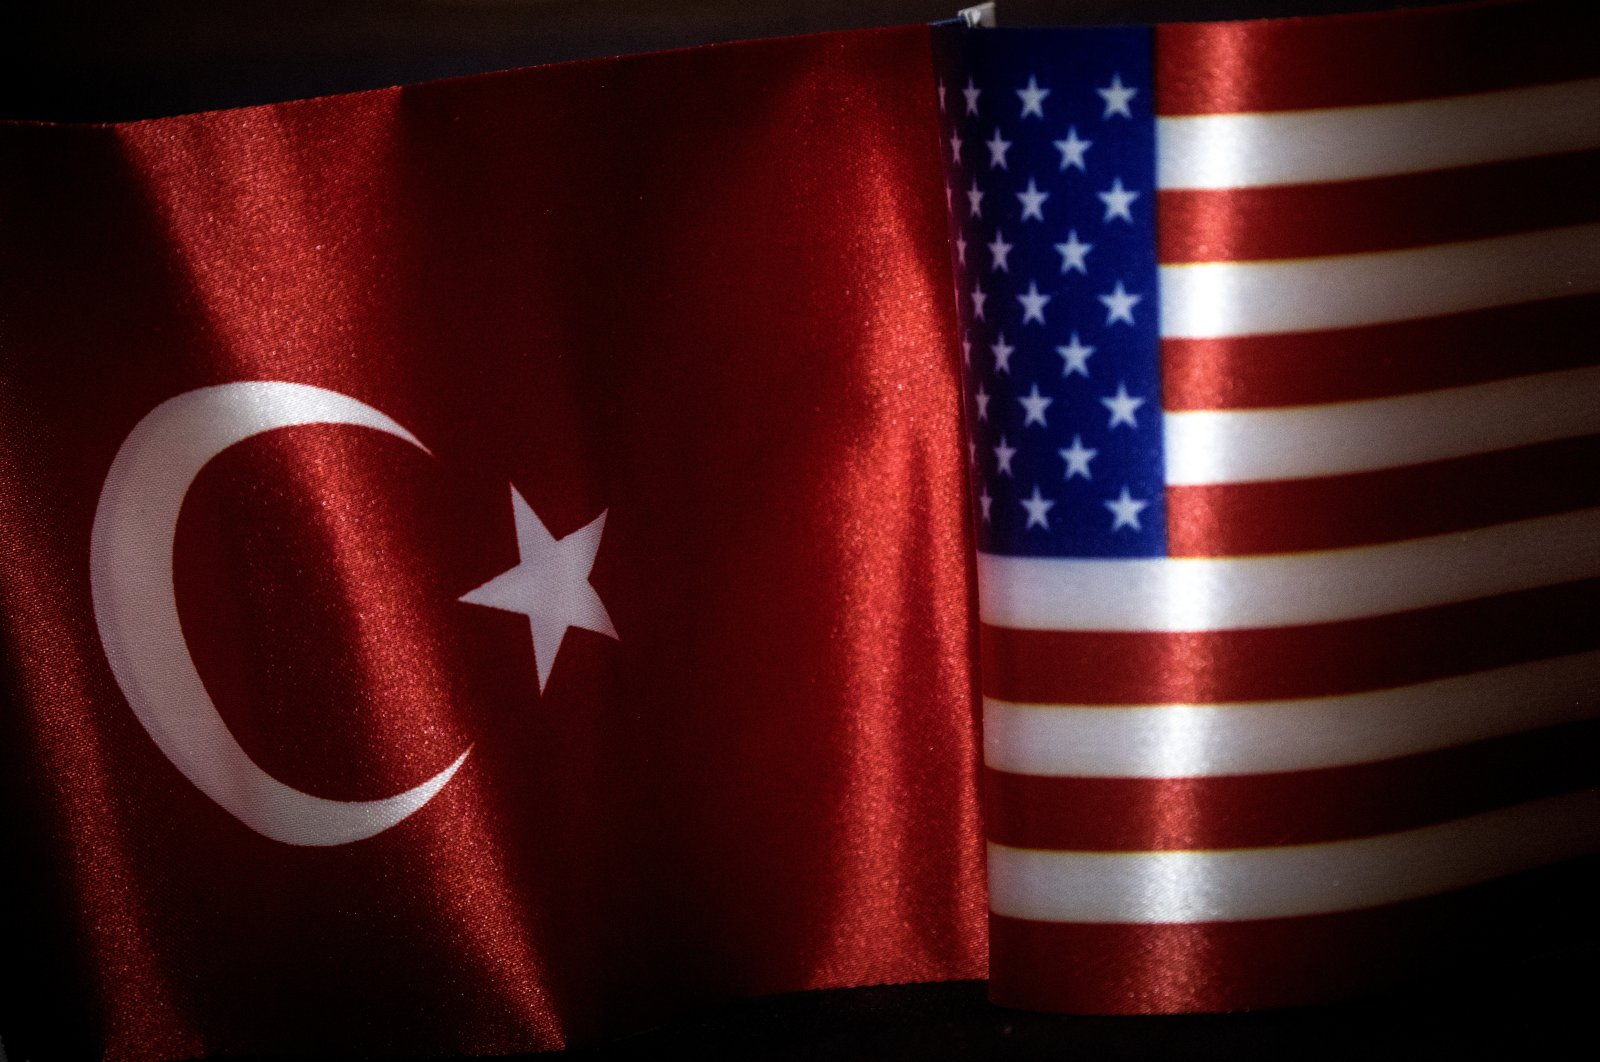 The flags of Turkey and the U.S. fly side by side in Istanbul, Turkey, Feb. 14, 2018. (Photo by Getty Images)